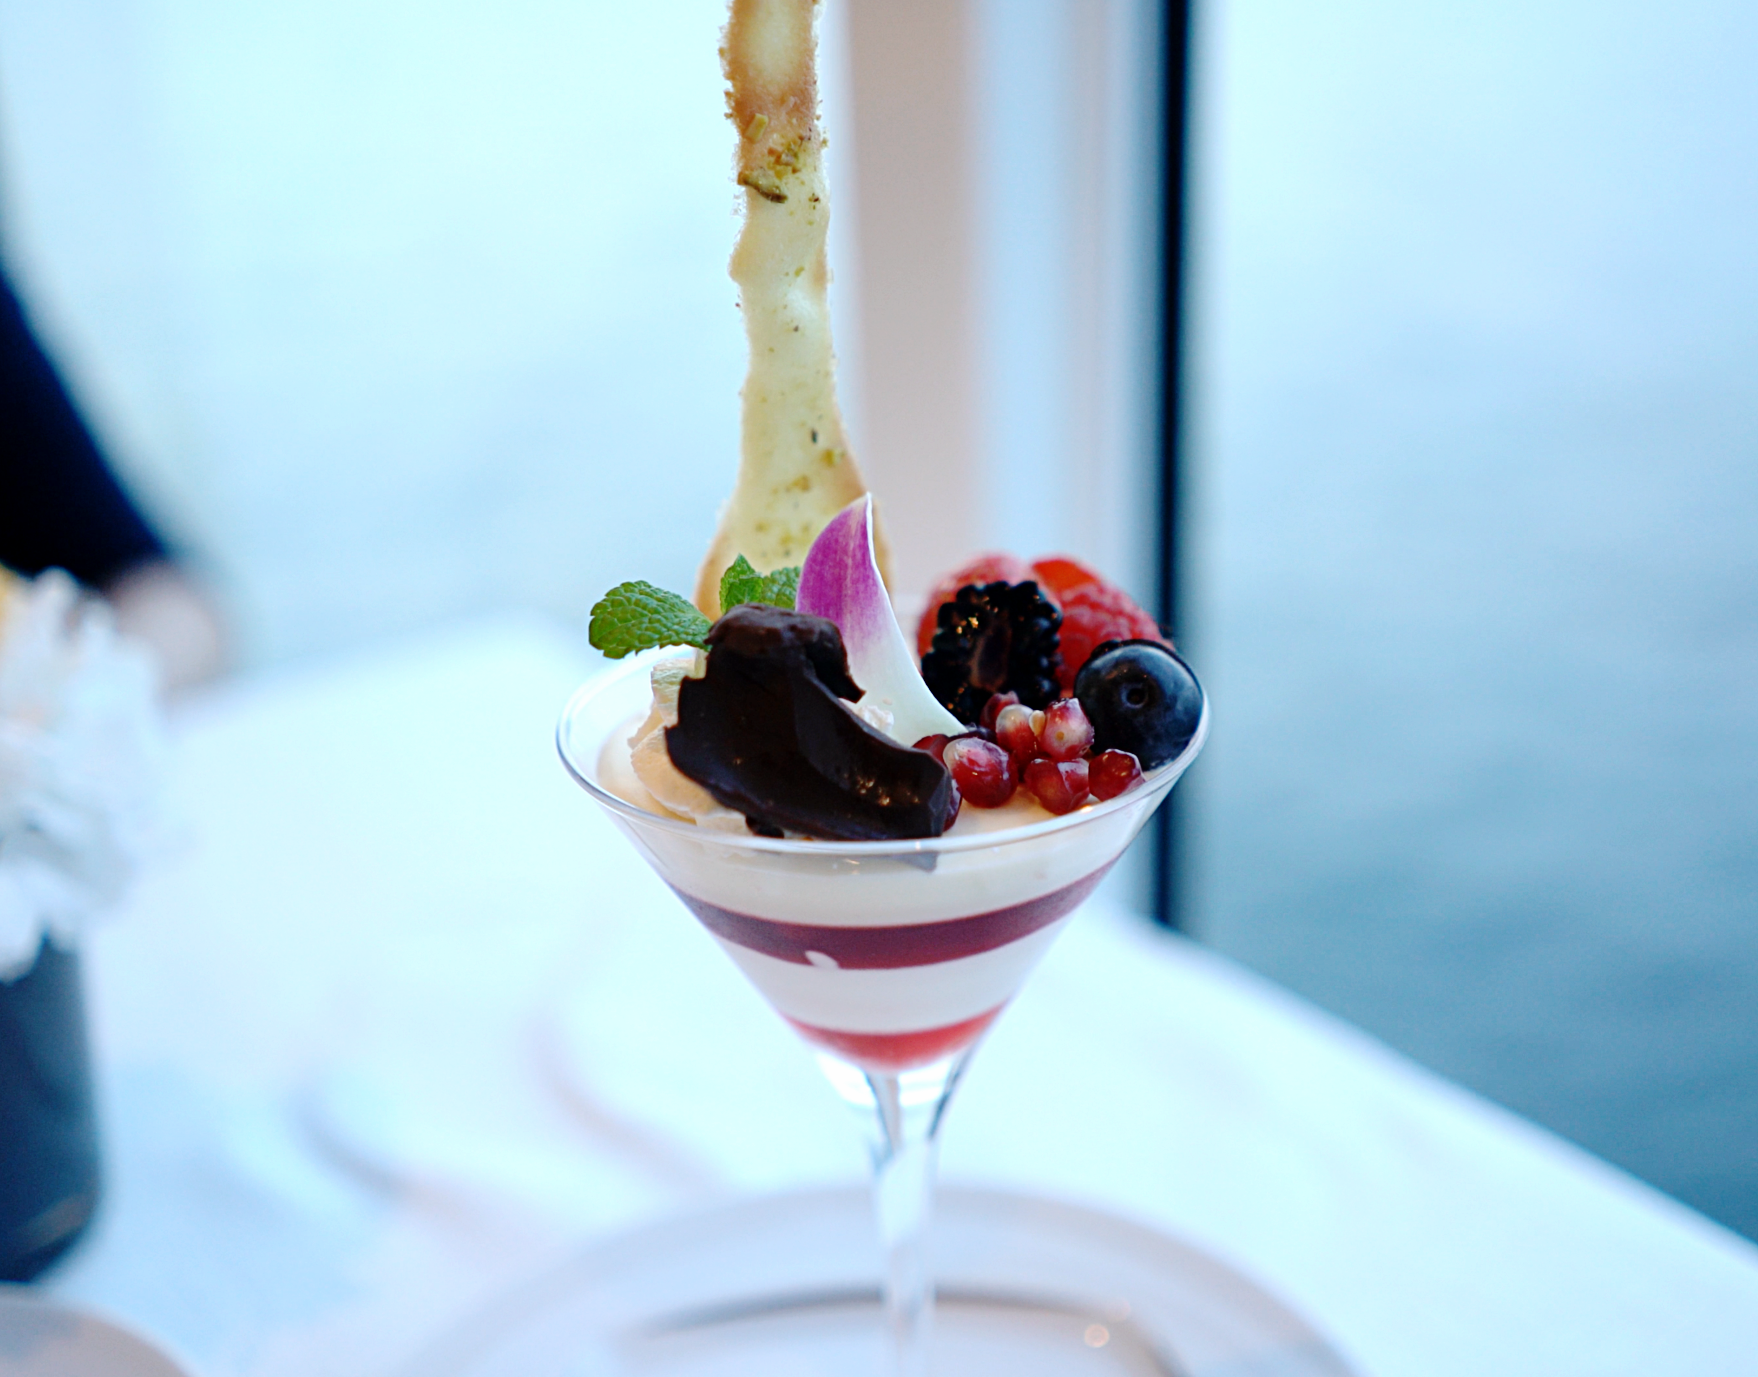 The delicious and beautiful passionfruit panna cotta.